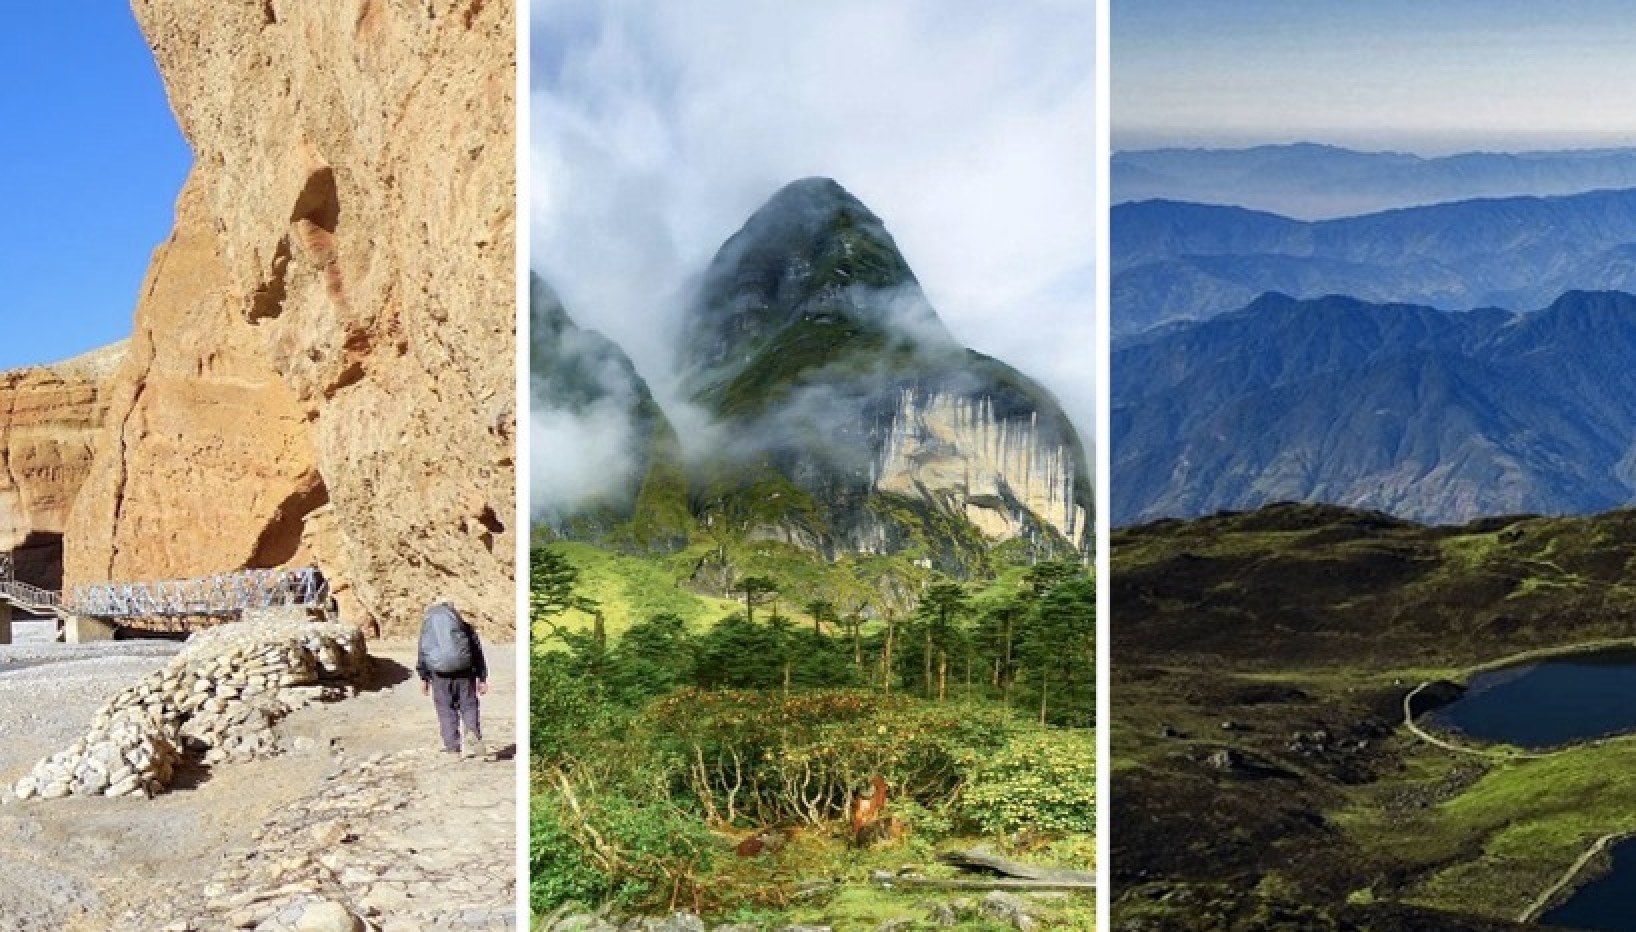 QUIZ: Are These Beautiful Scenes From Nepal Or Abroad?